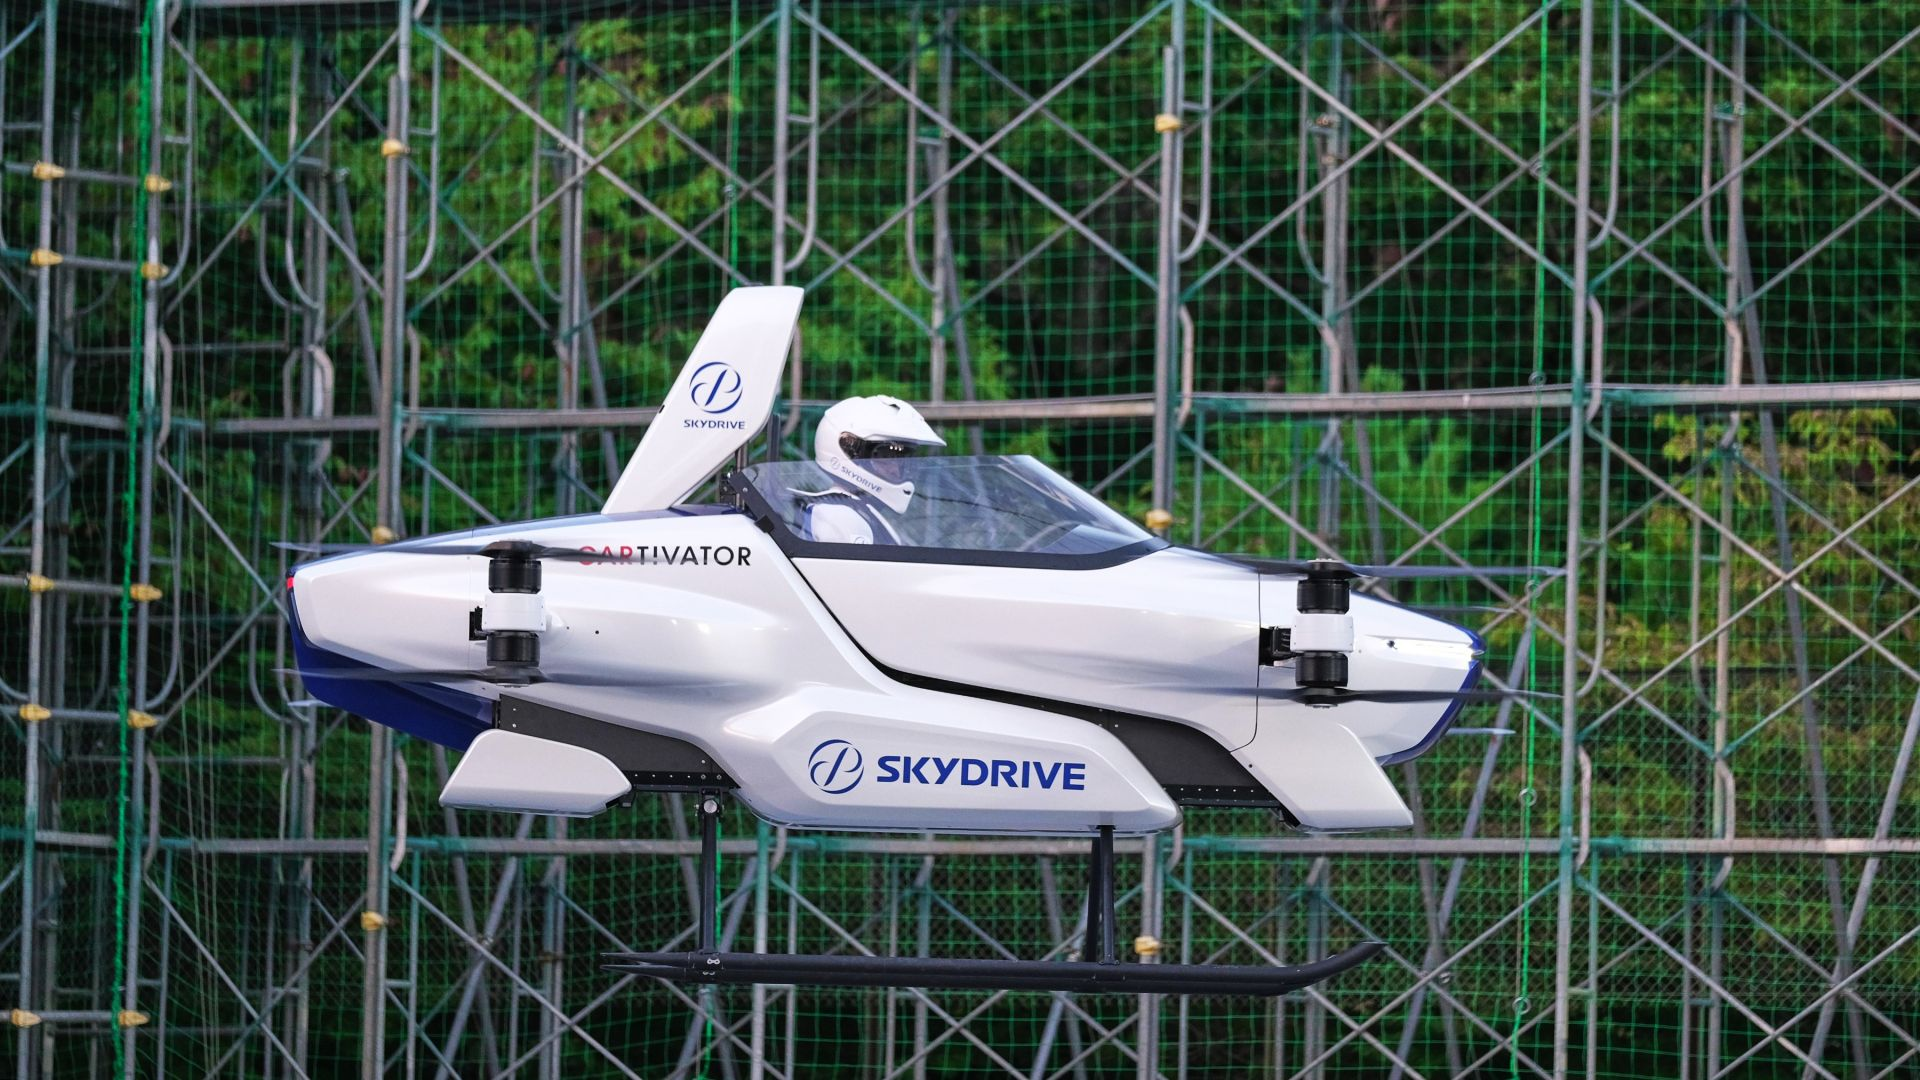 летающее такси, Toyota SkyDrive, flying taxi, 4K (horizontal)